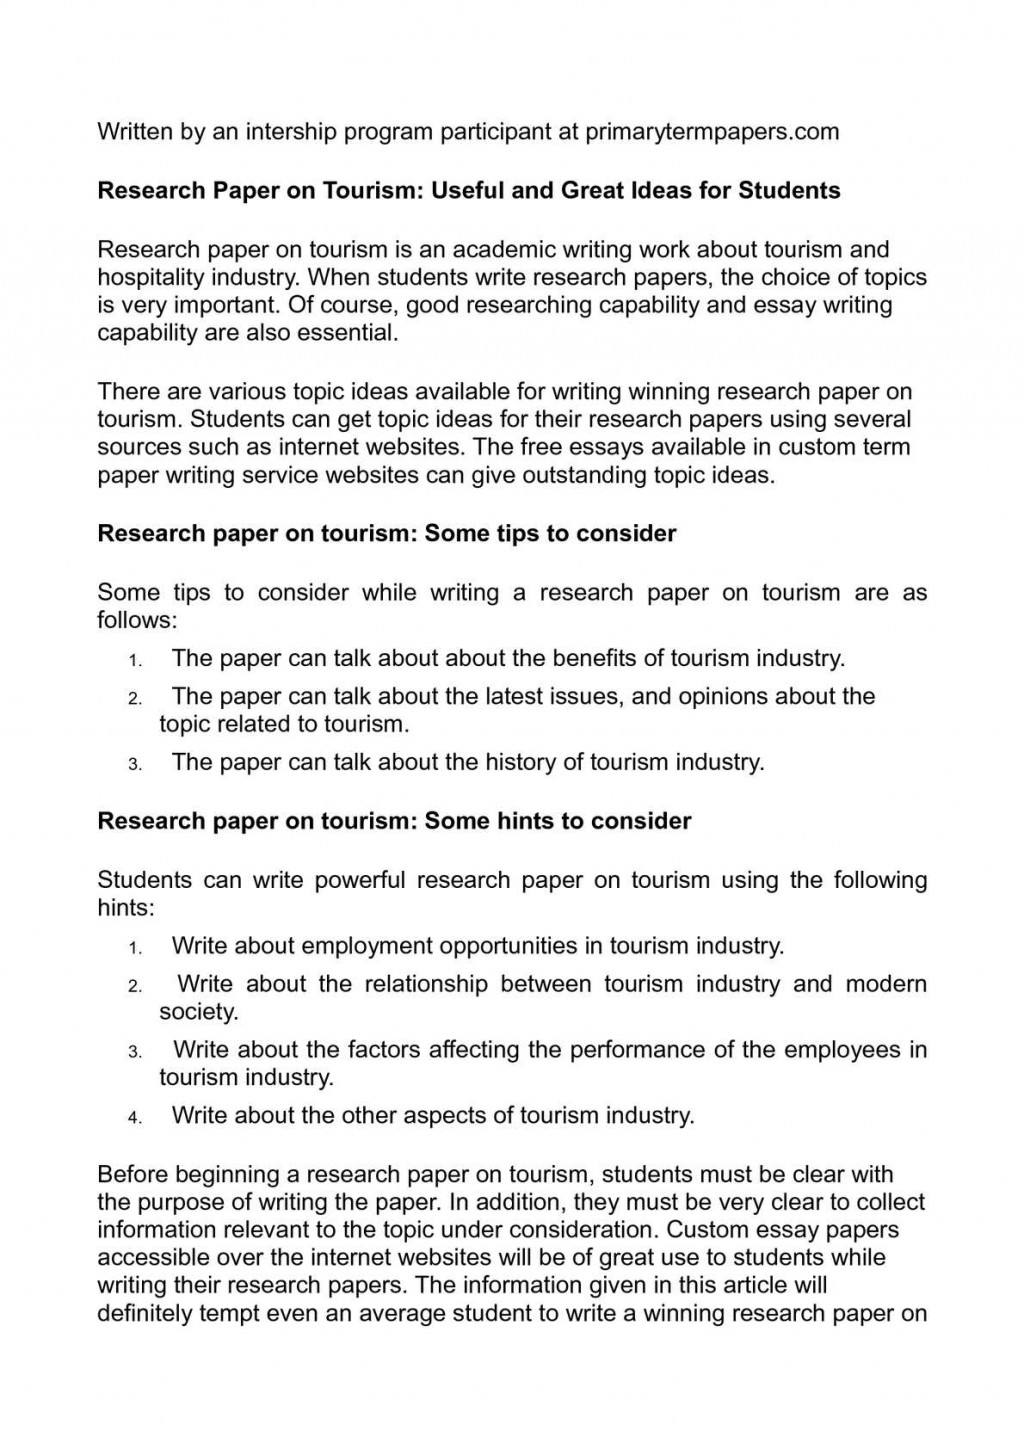 002 Ideas To Write Research Paper On Dreaded A Good Large